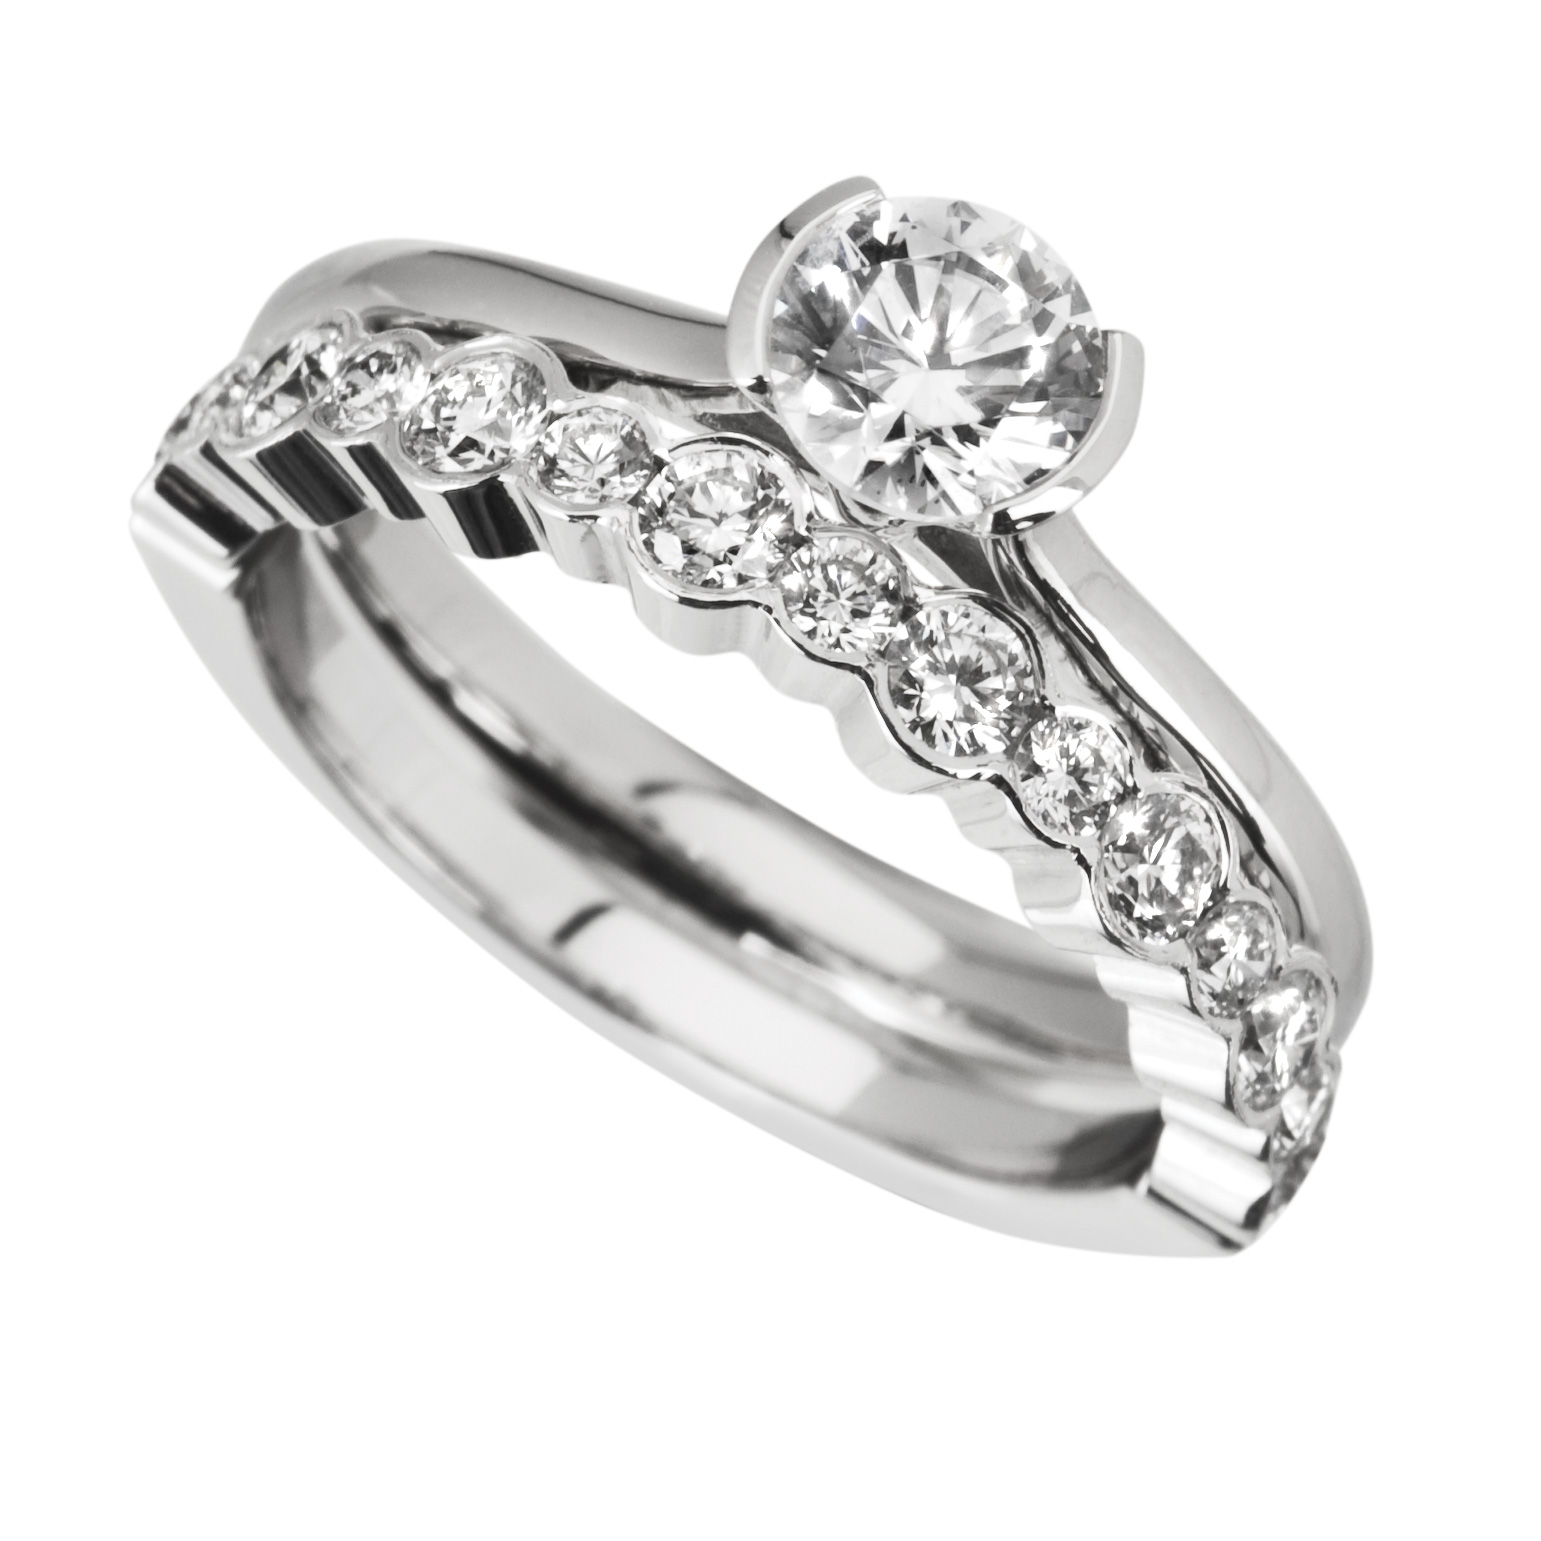 Make Your Wedding Special With Unique Engagement Rings Styleskier